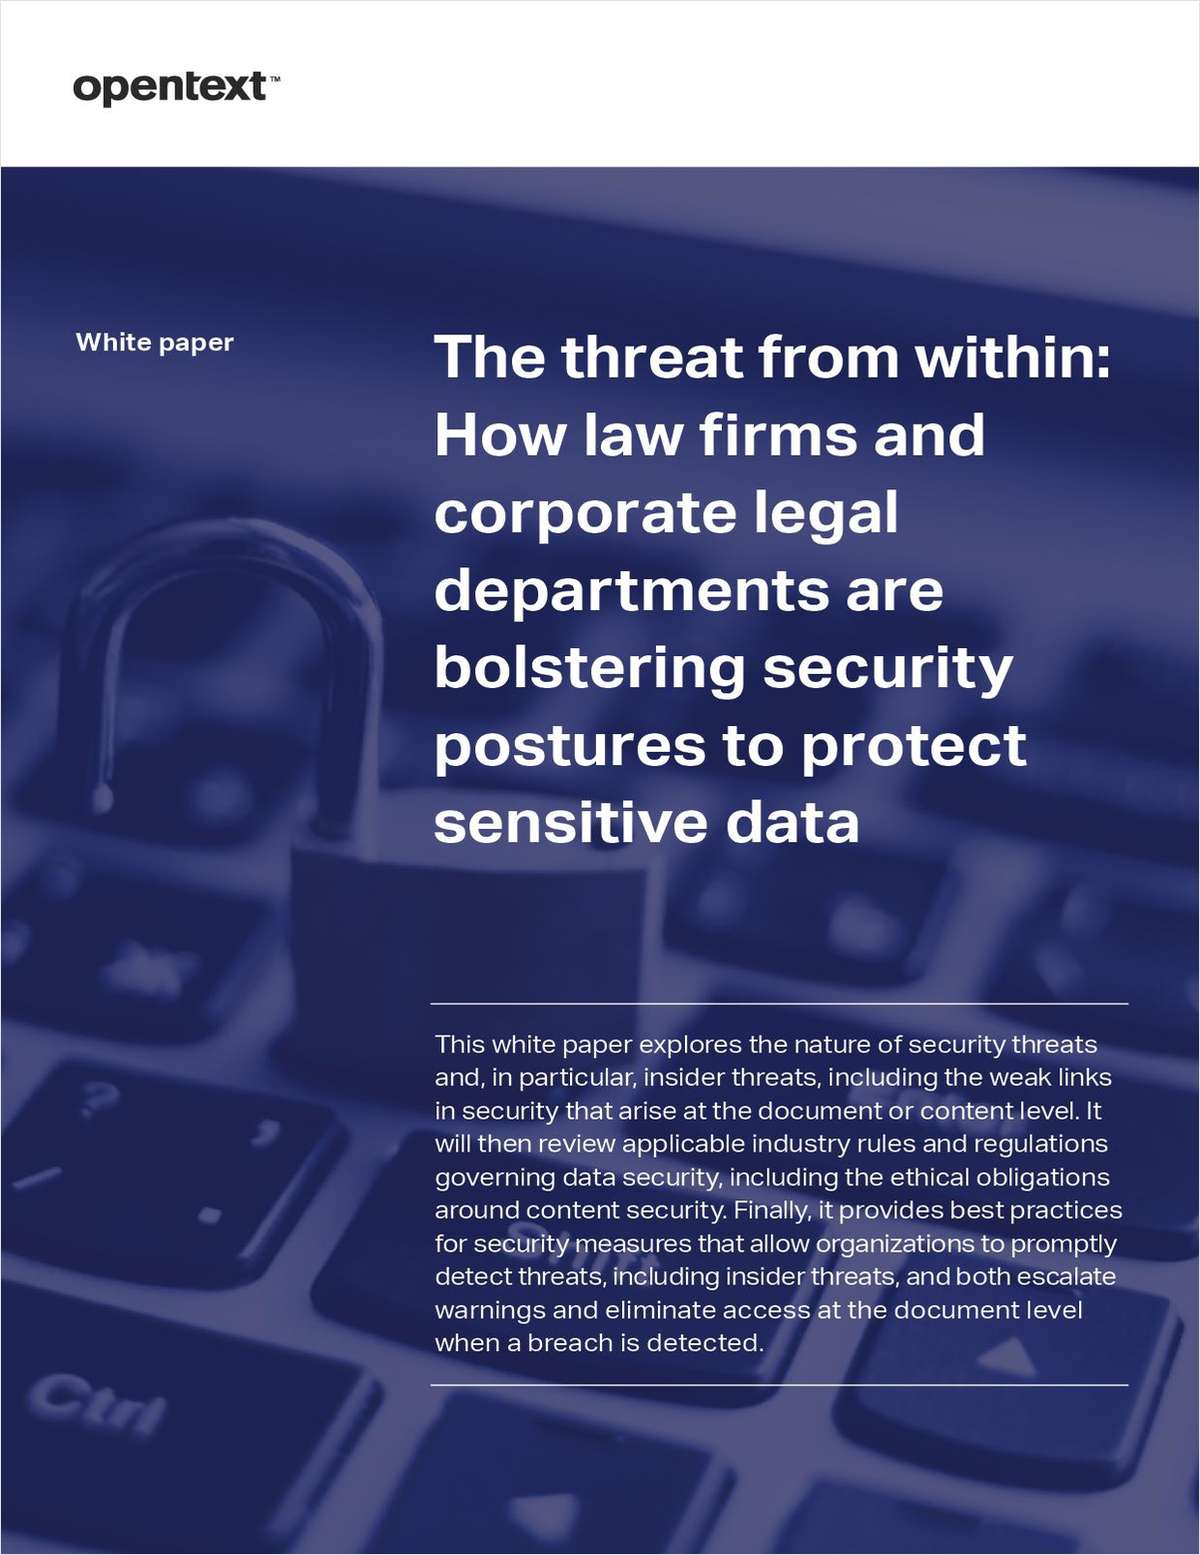 The Threat from Within: How Corporate Legal Departments Are Bolstering Security Postures to Protect Sensitive Data